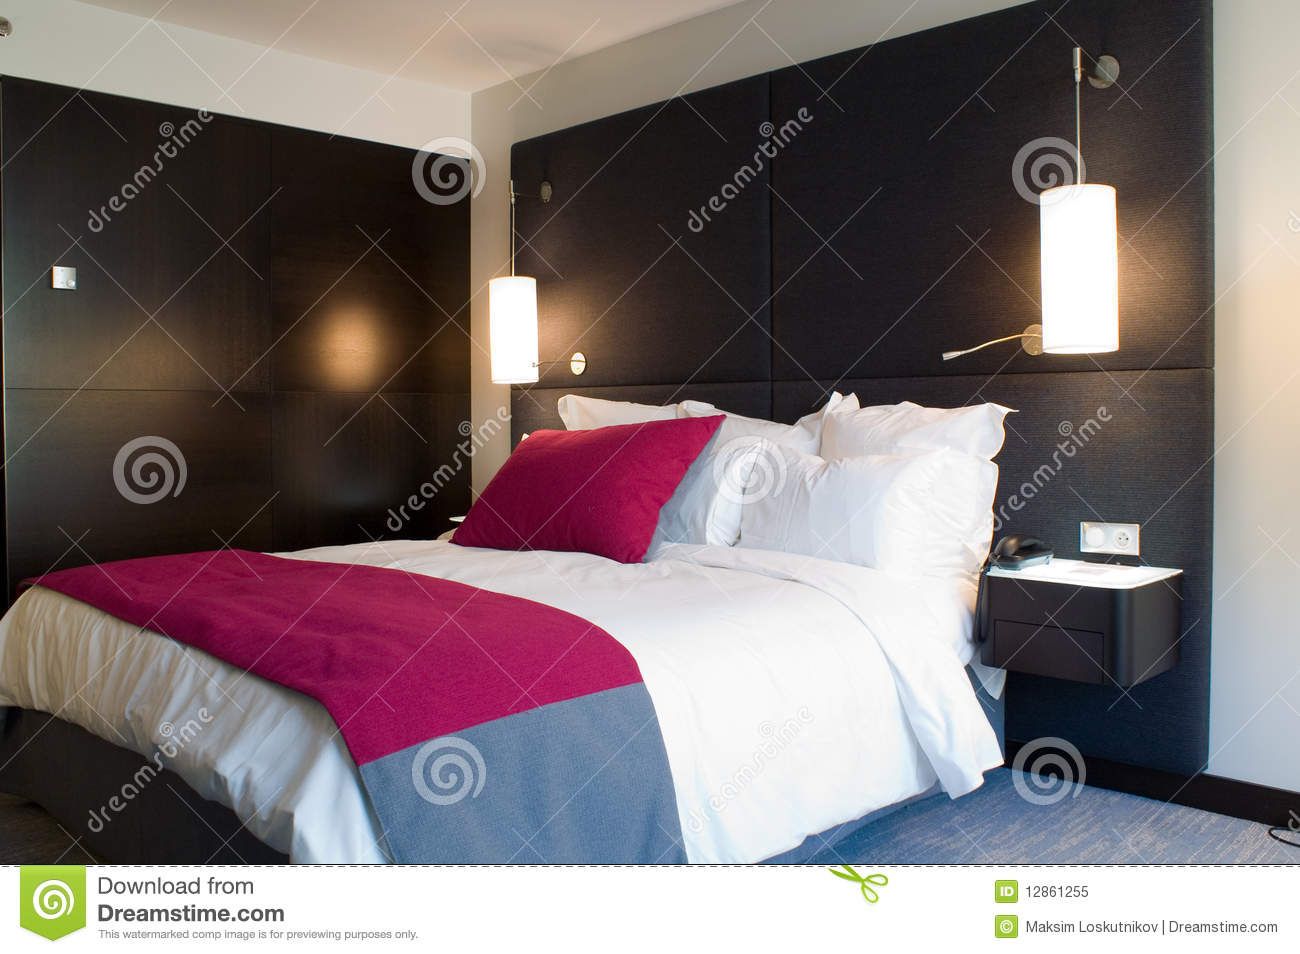 Bedroom royalty free stock photo image 12861255 - Bed room photo ...